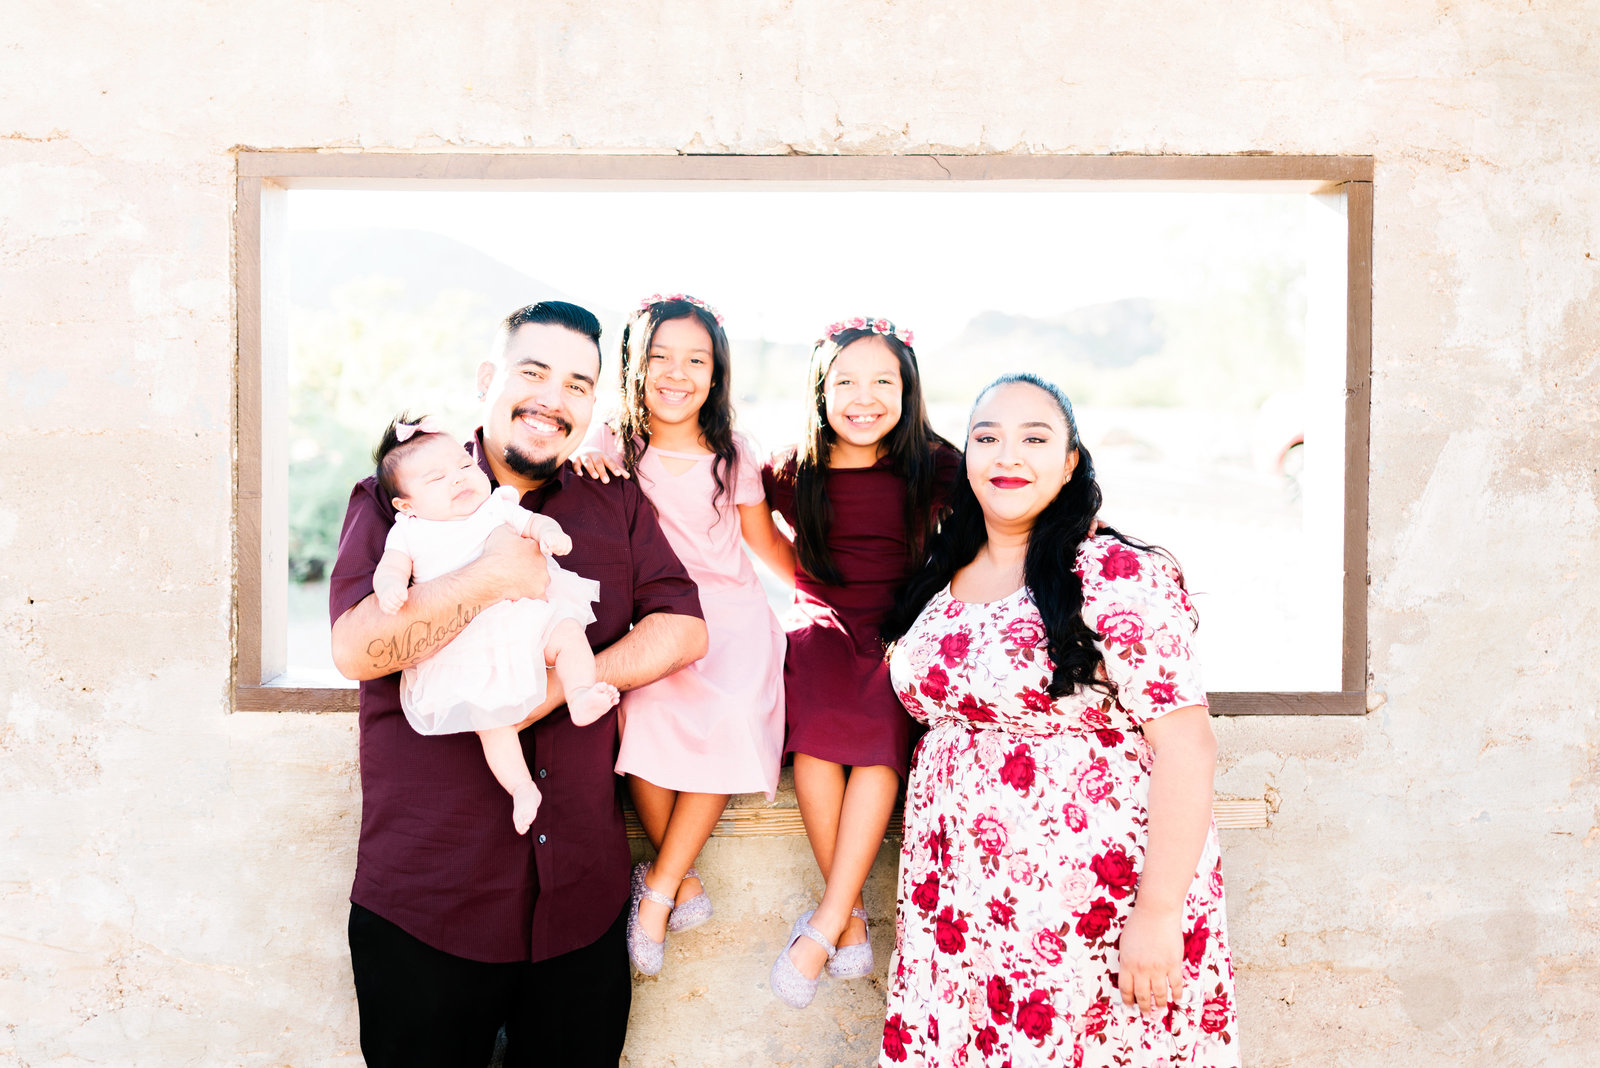 Barr's-Family-Session-Scorpion-Gulch-Arizona-Ashley-Flug-Photography25